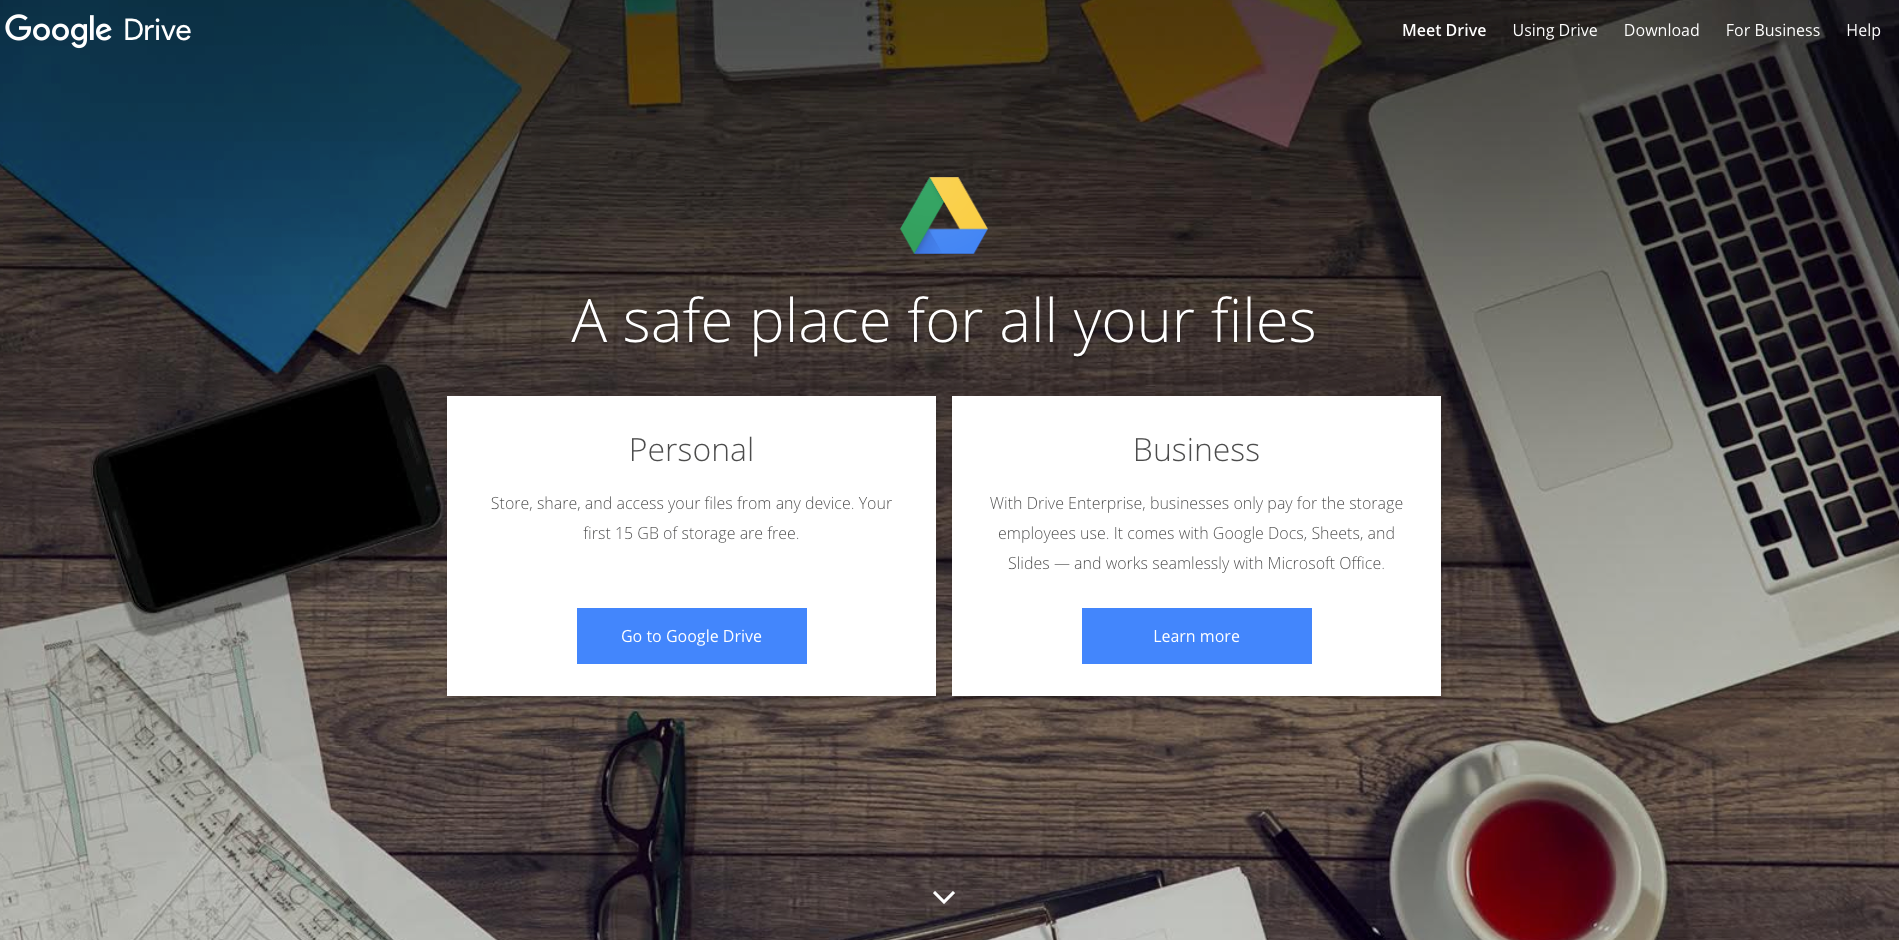 google drive homepage screenshot